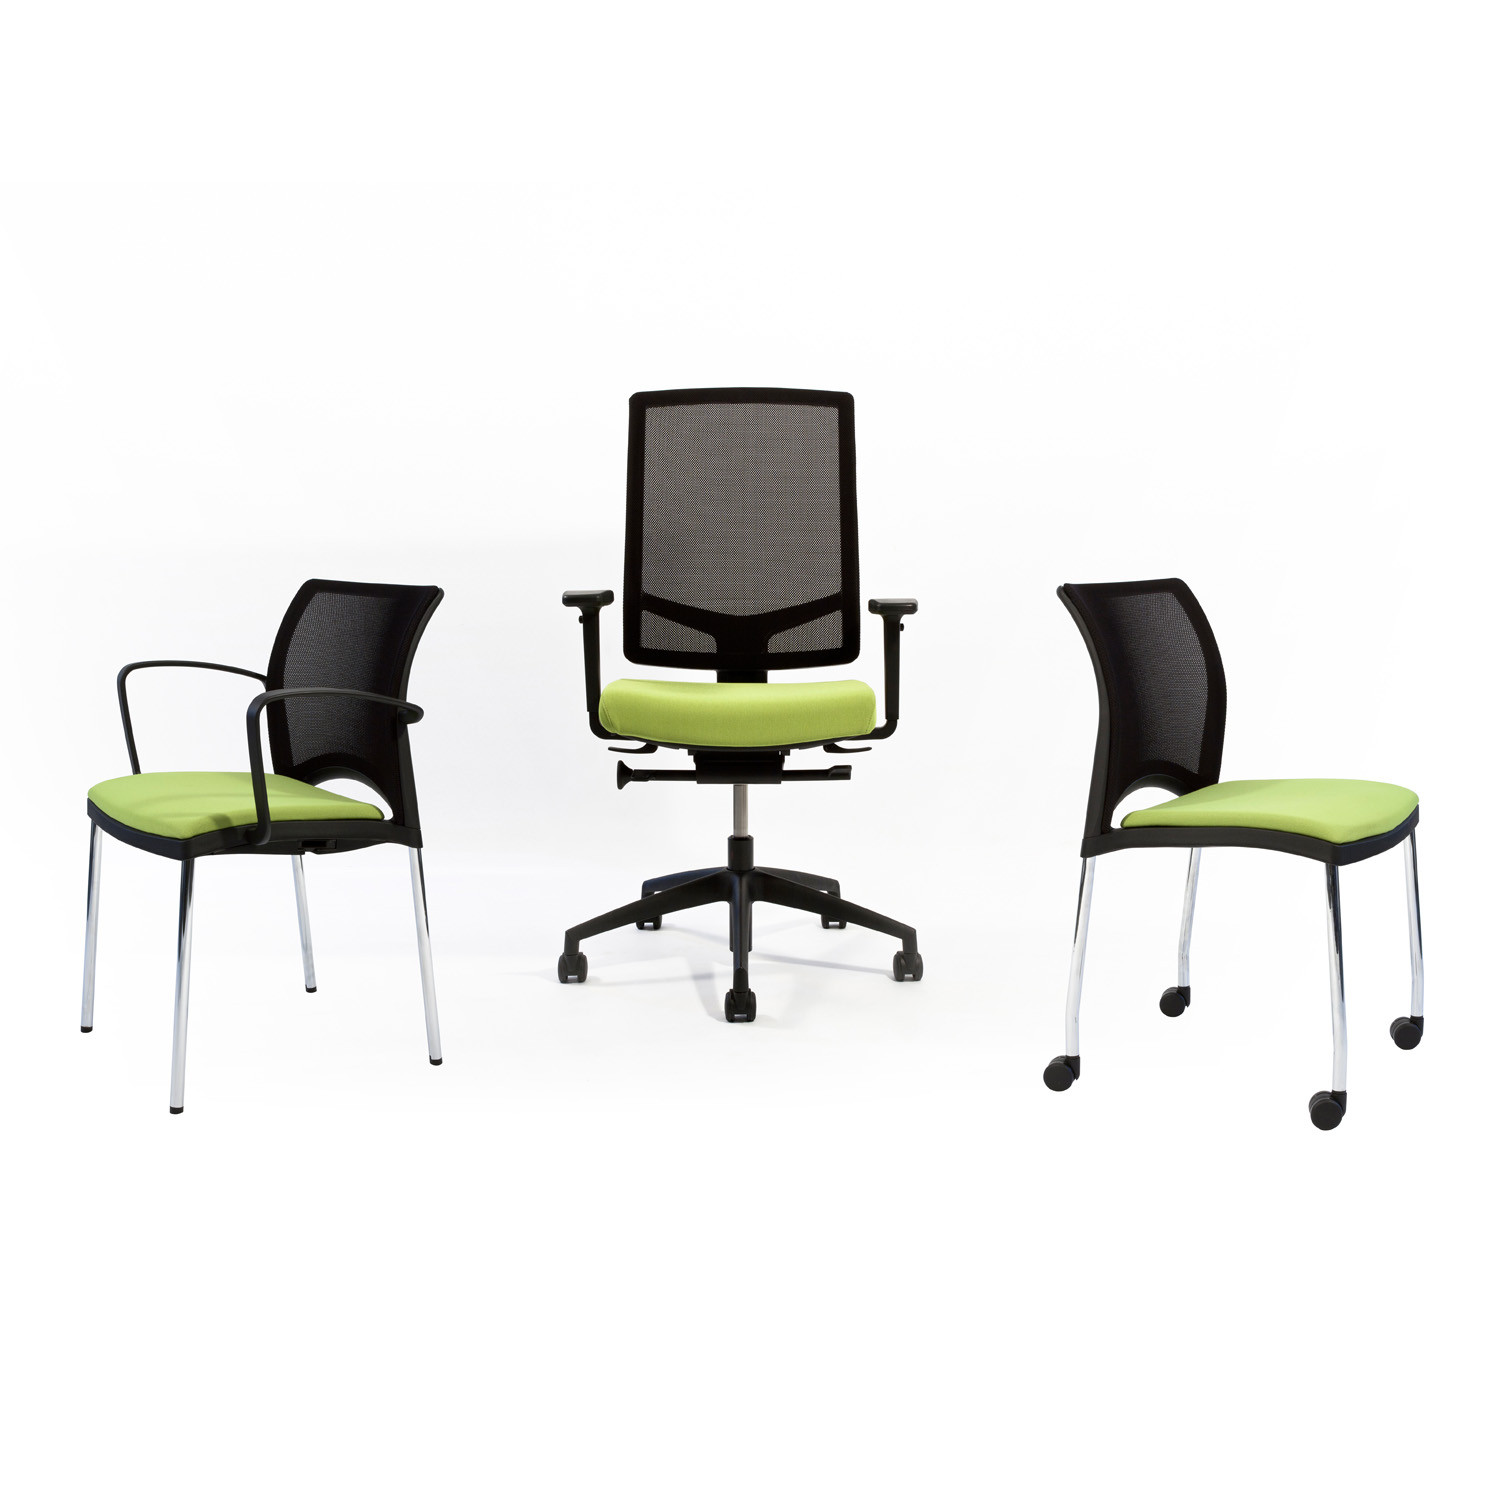 Faveo Office Seating Range by KI